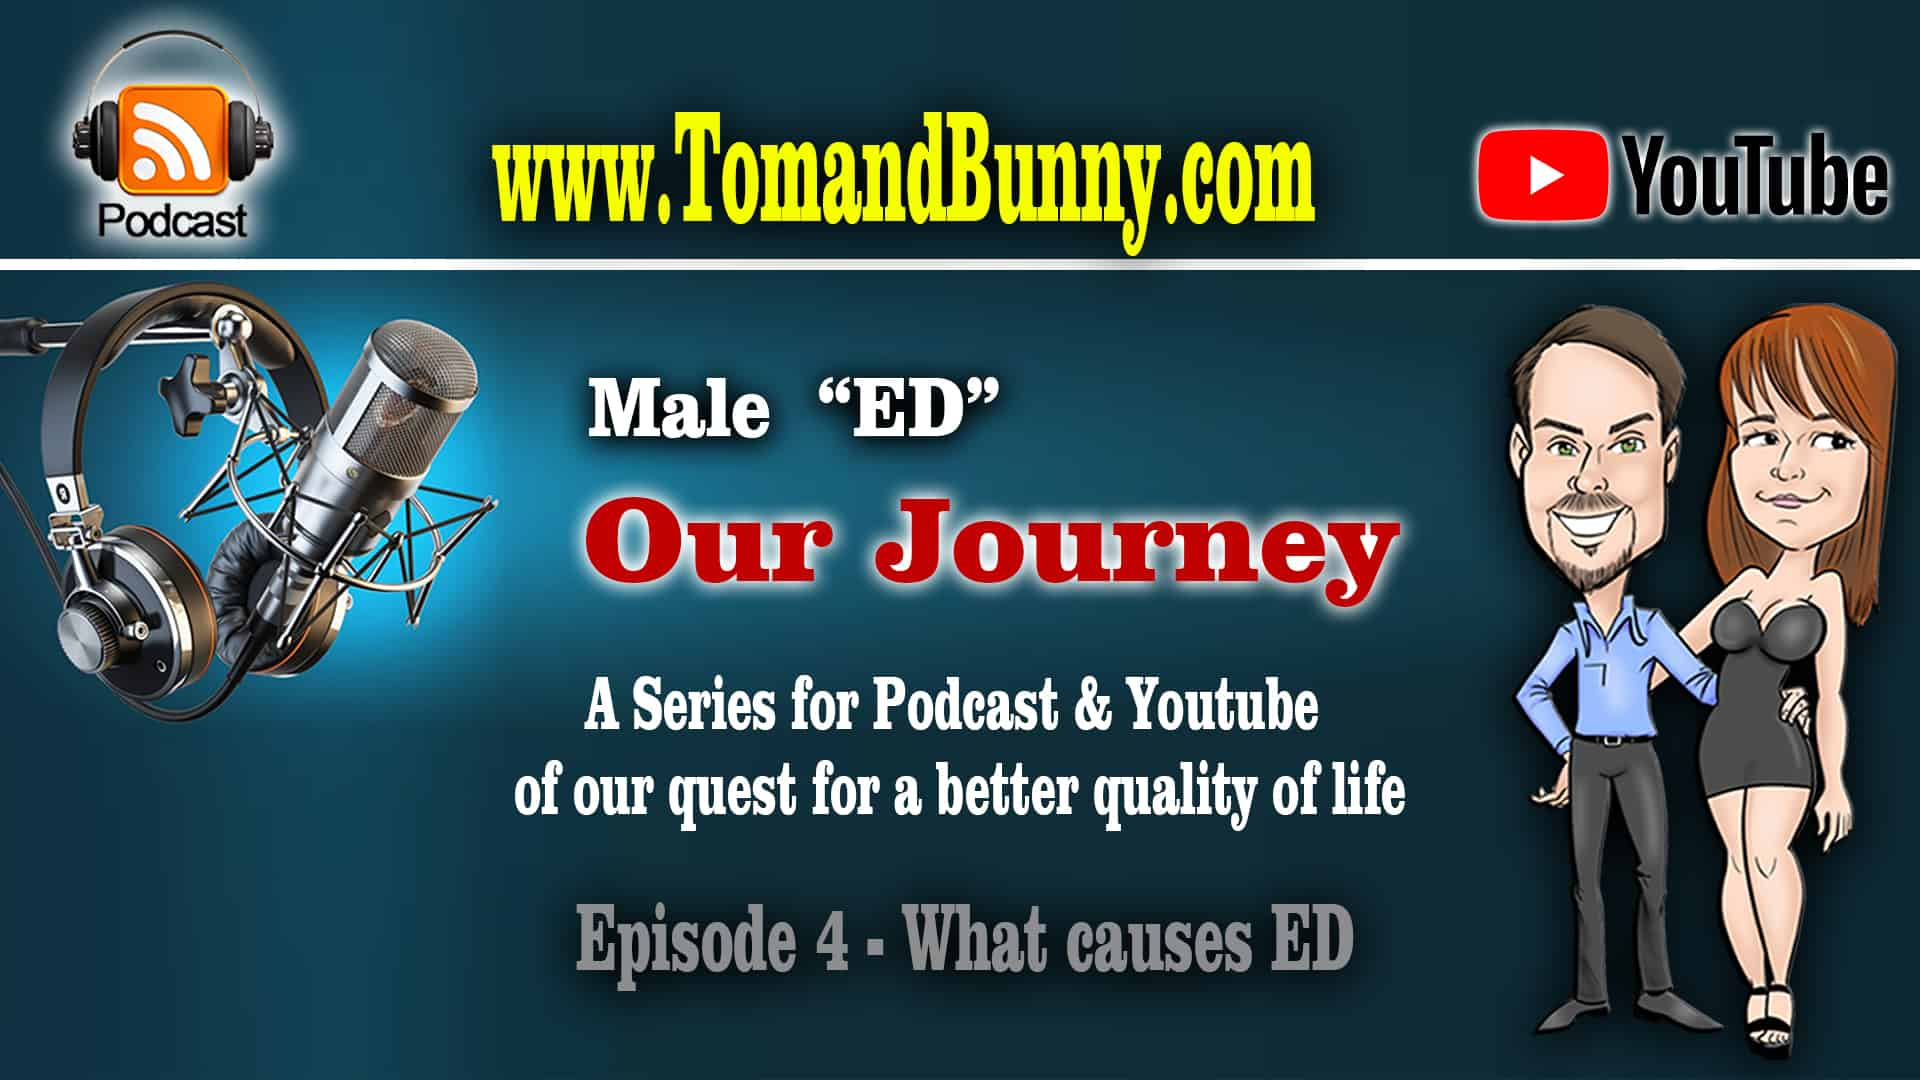 Episode 4 - What causes ED